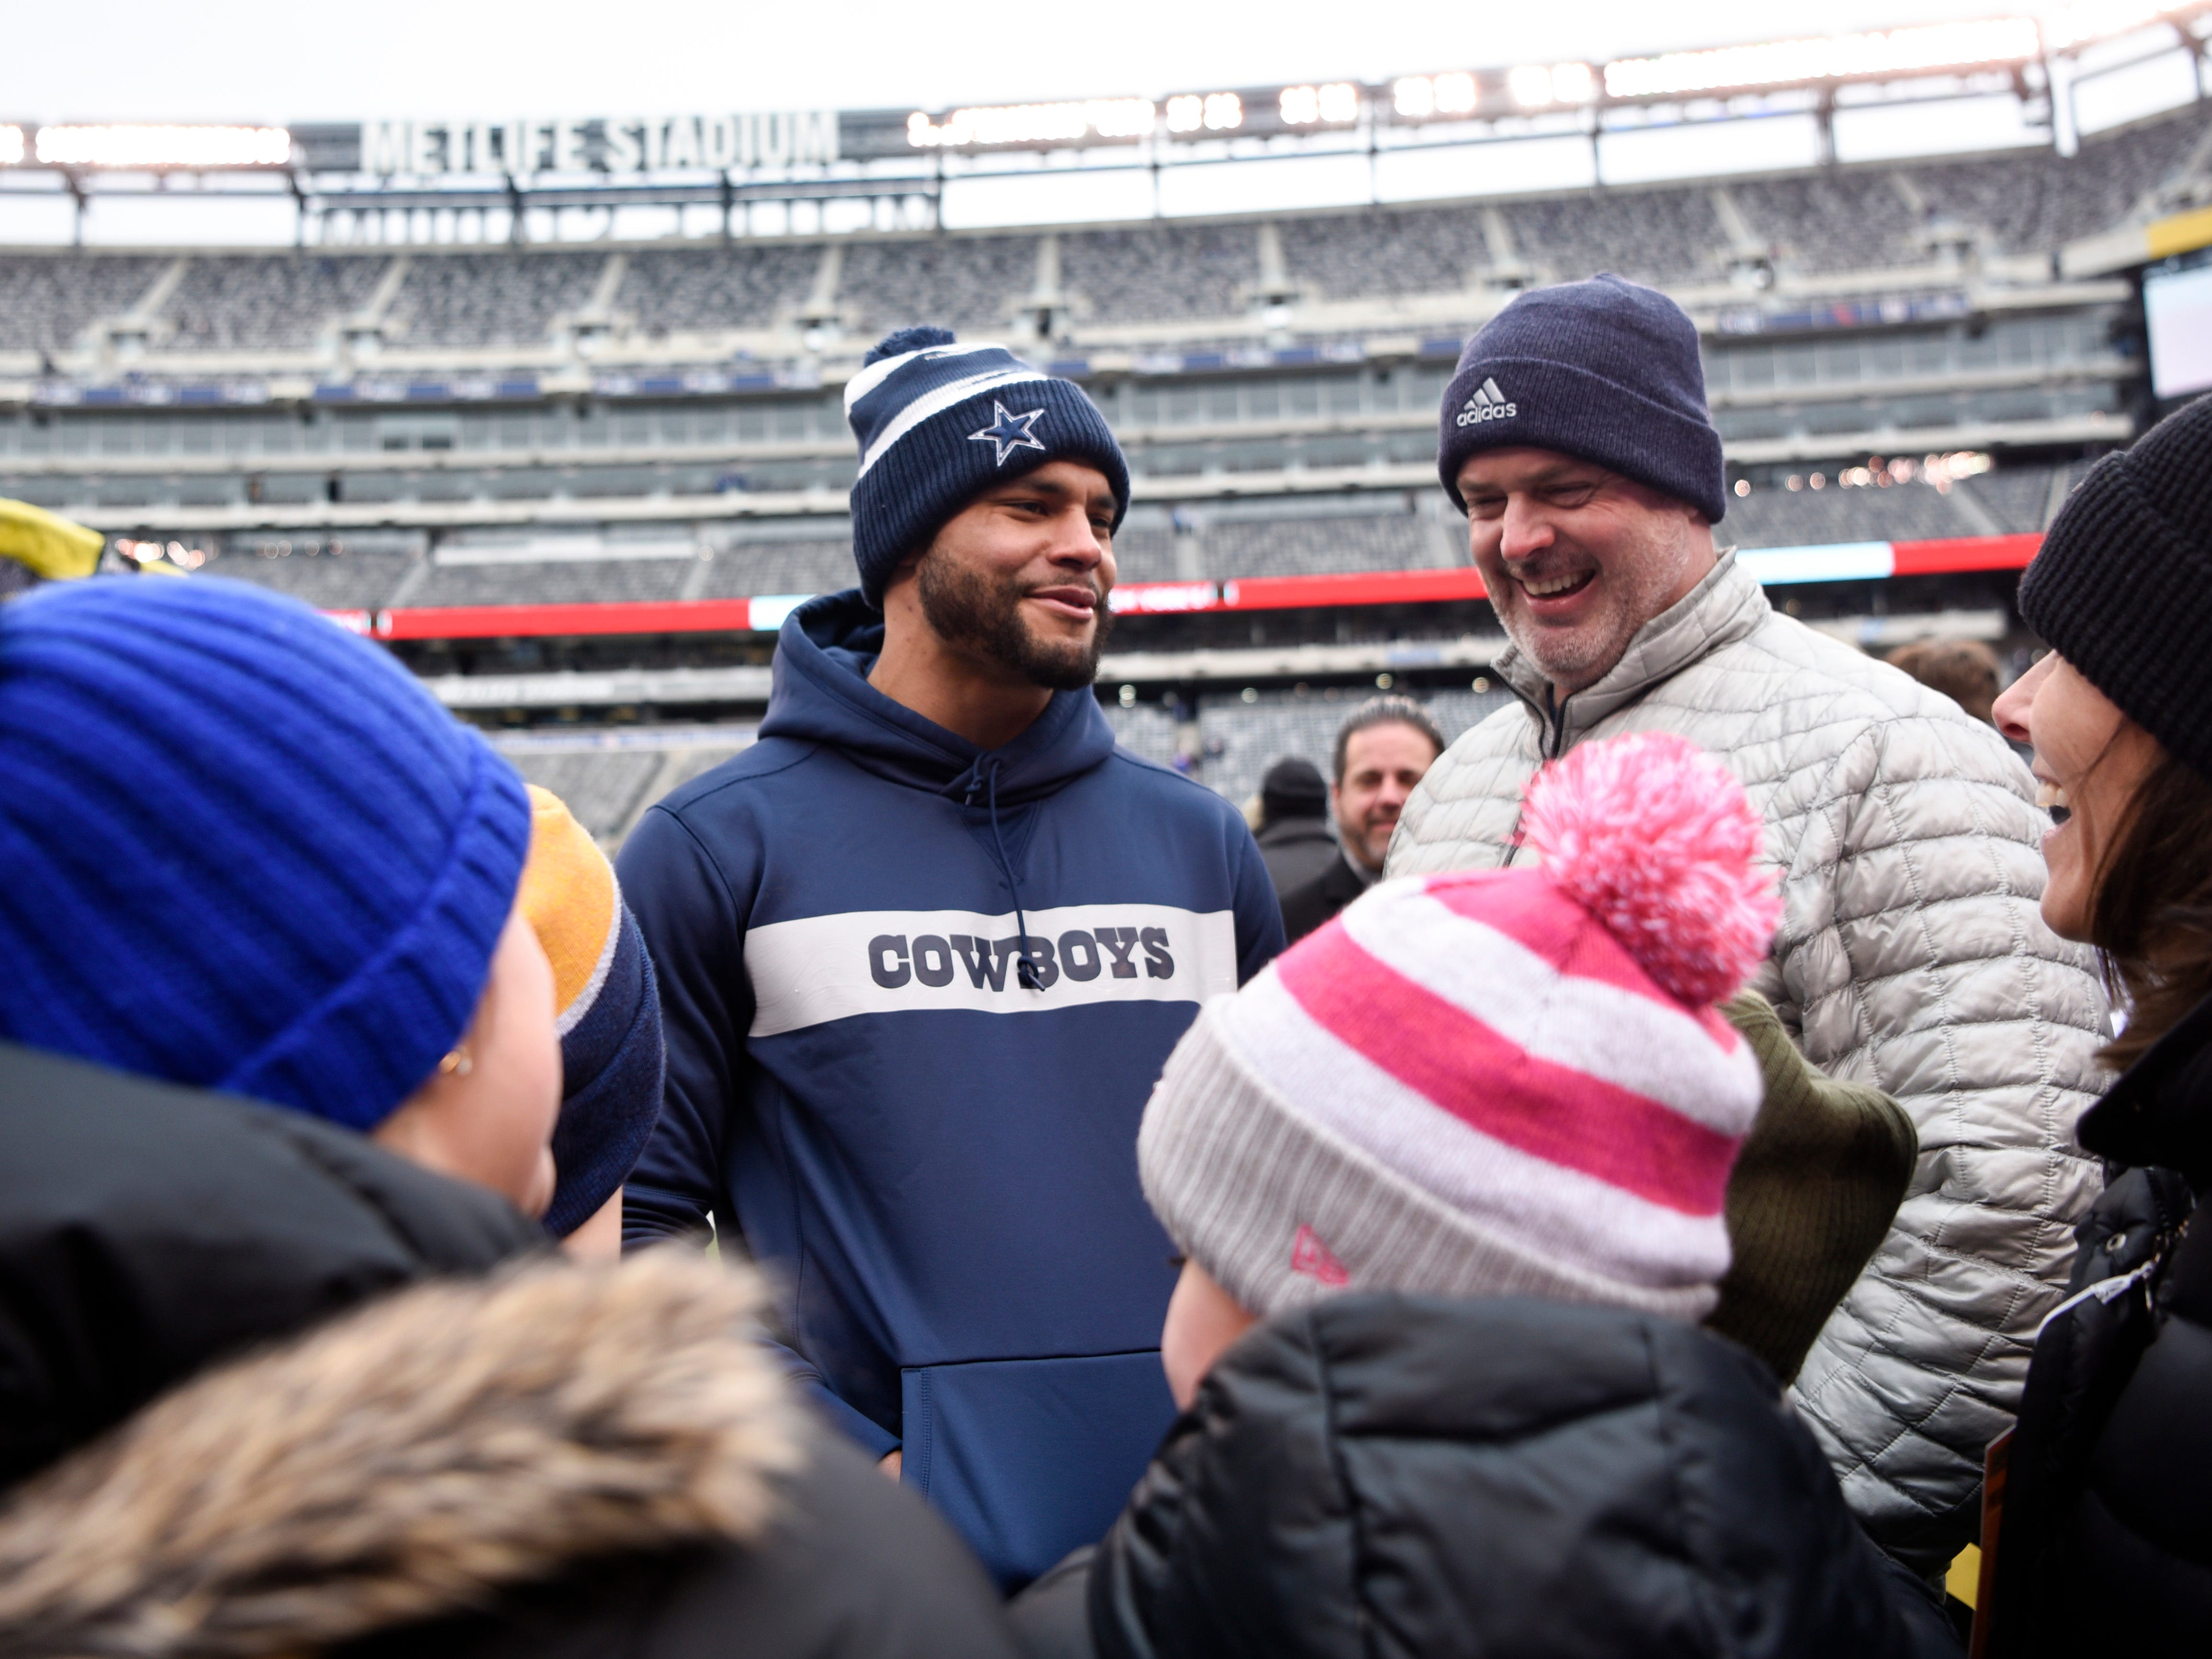 Dallas Cowboys quarterback Dak Prescott (4) walks to fans during warmups. The New York Giants face the Dallas Cowboys in the last regular season game on Sunday, Dec. 30, 2018, in East Rutherford.